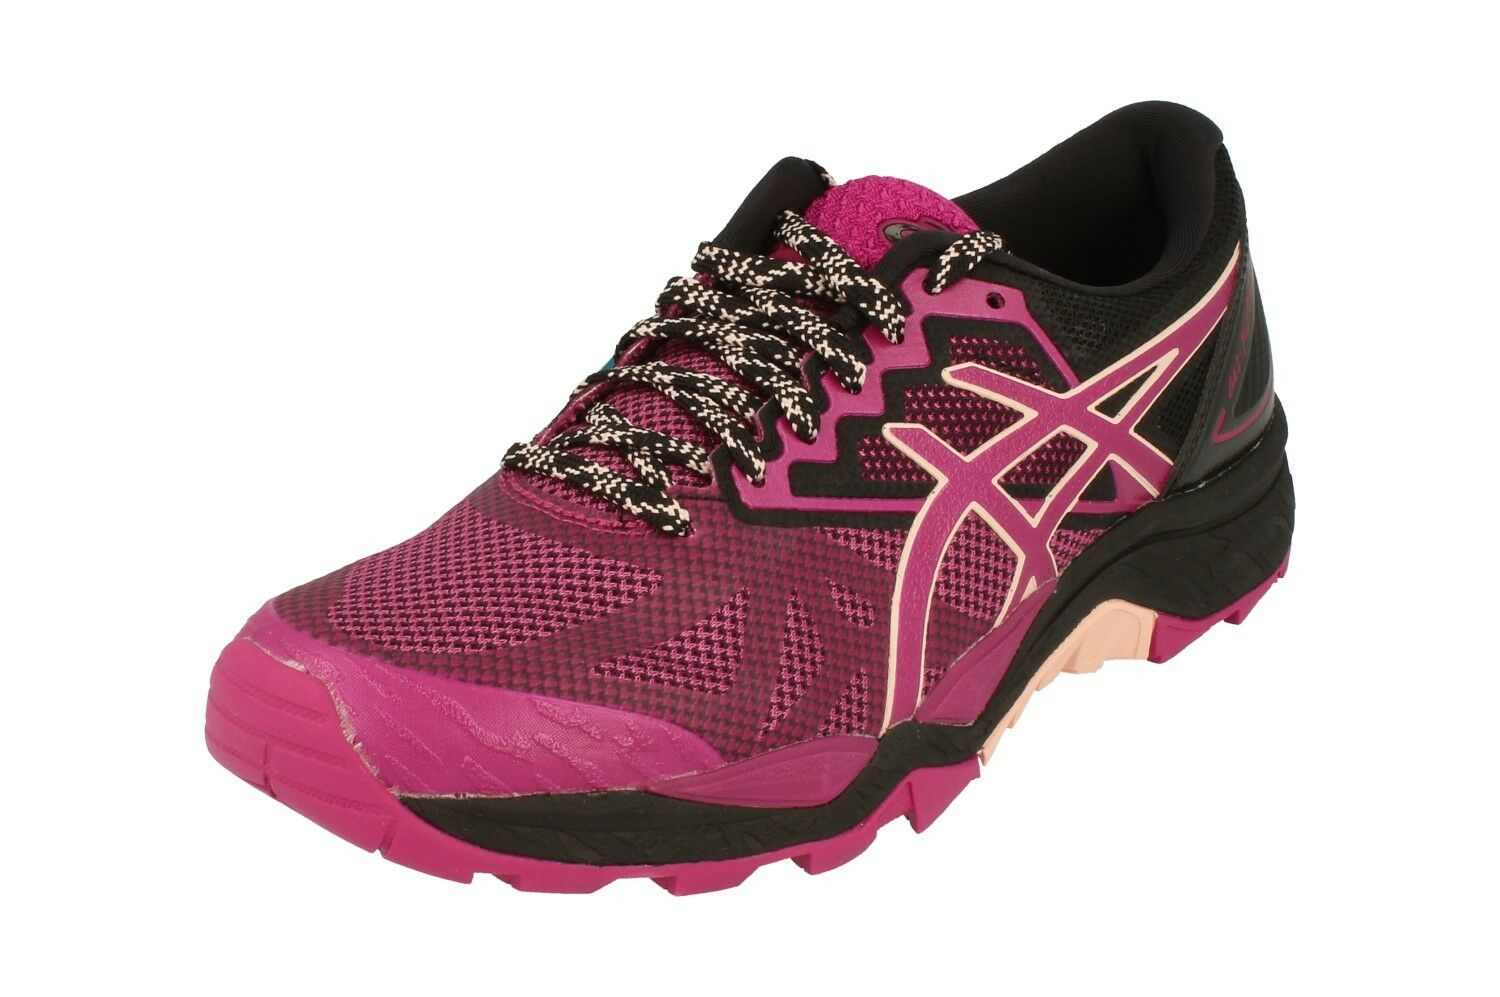 Asics Gel-Fujitrabuco 6 Womens Running Trainers T7E9N Sneakers shoes 3217